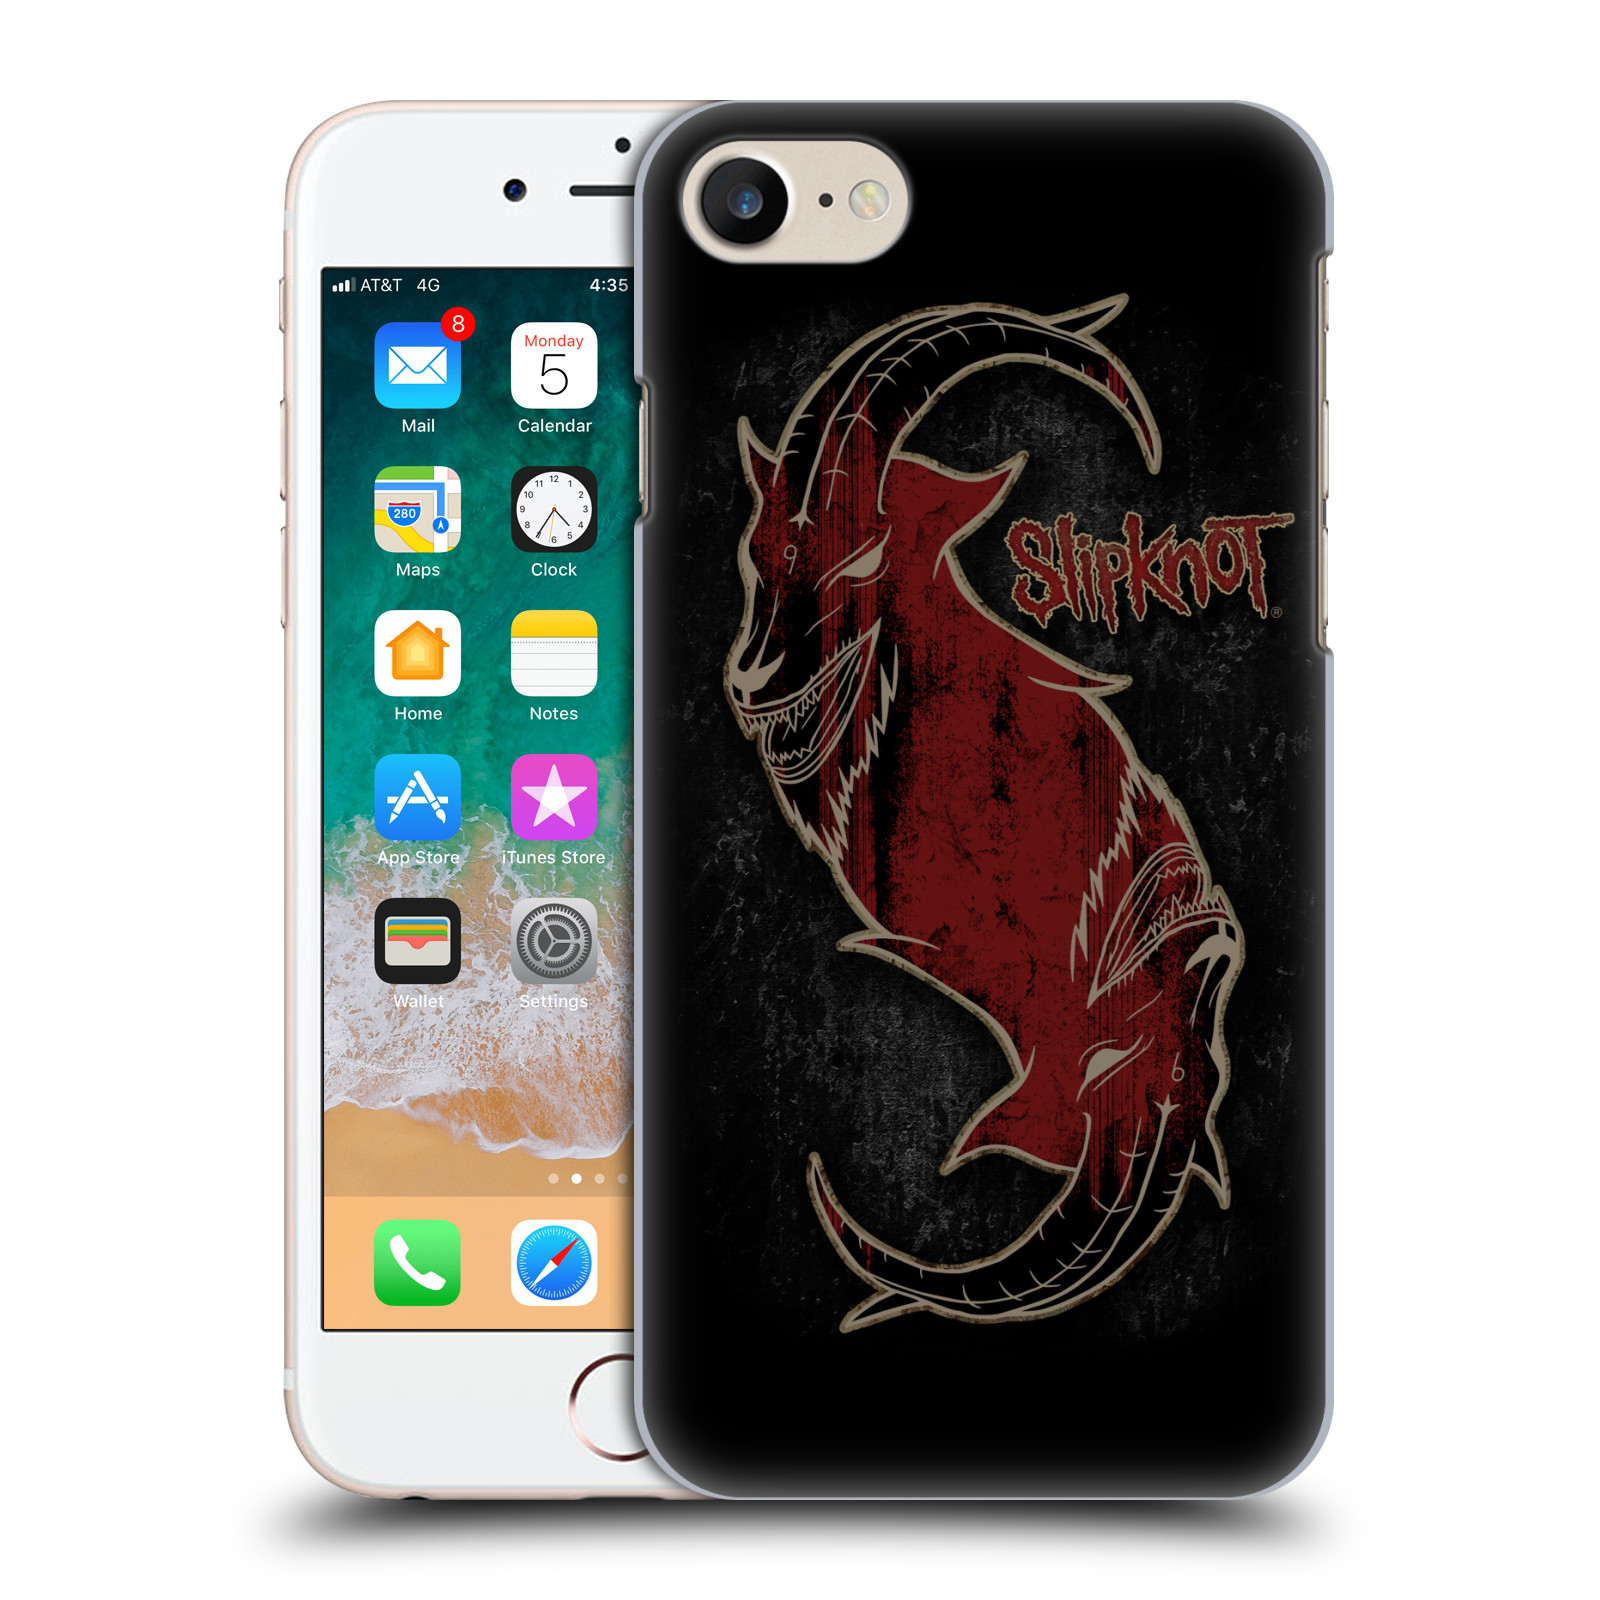 Plastové pouzdro na mobil Apple iPhone SE (2020) - Head Case - Slipknot - Rudý kozel